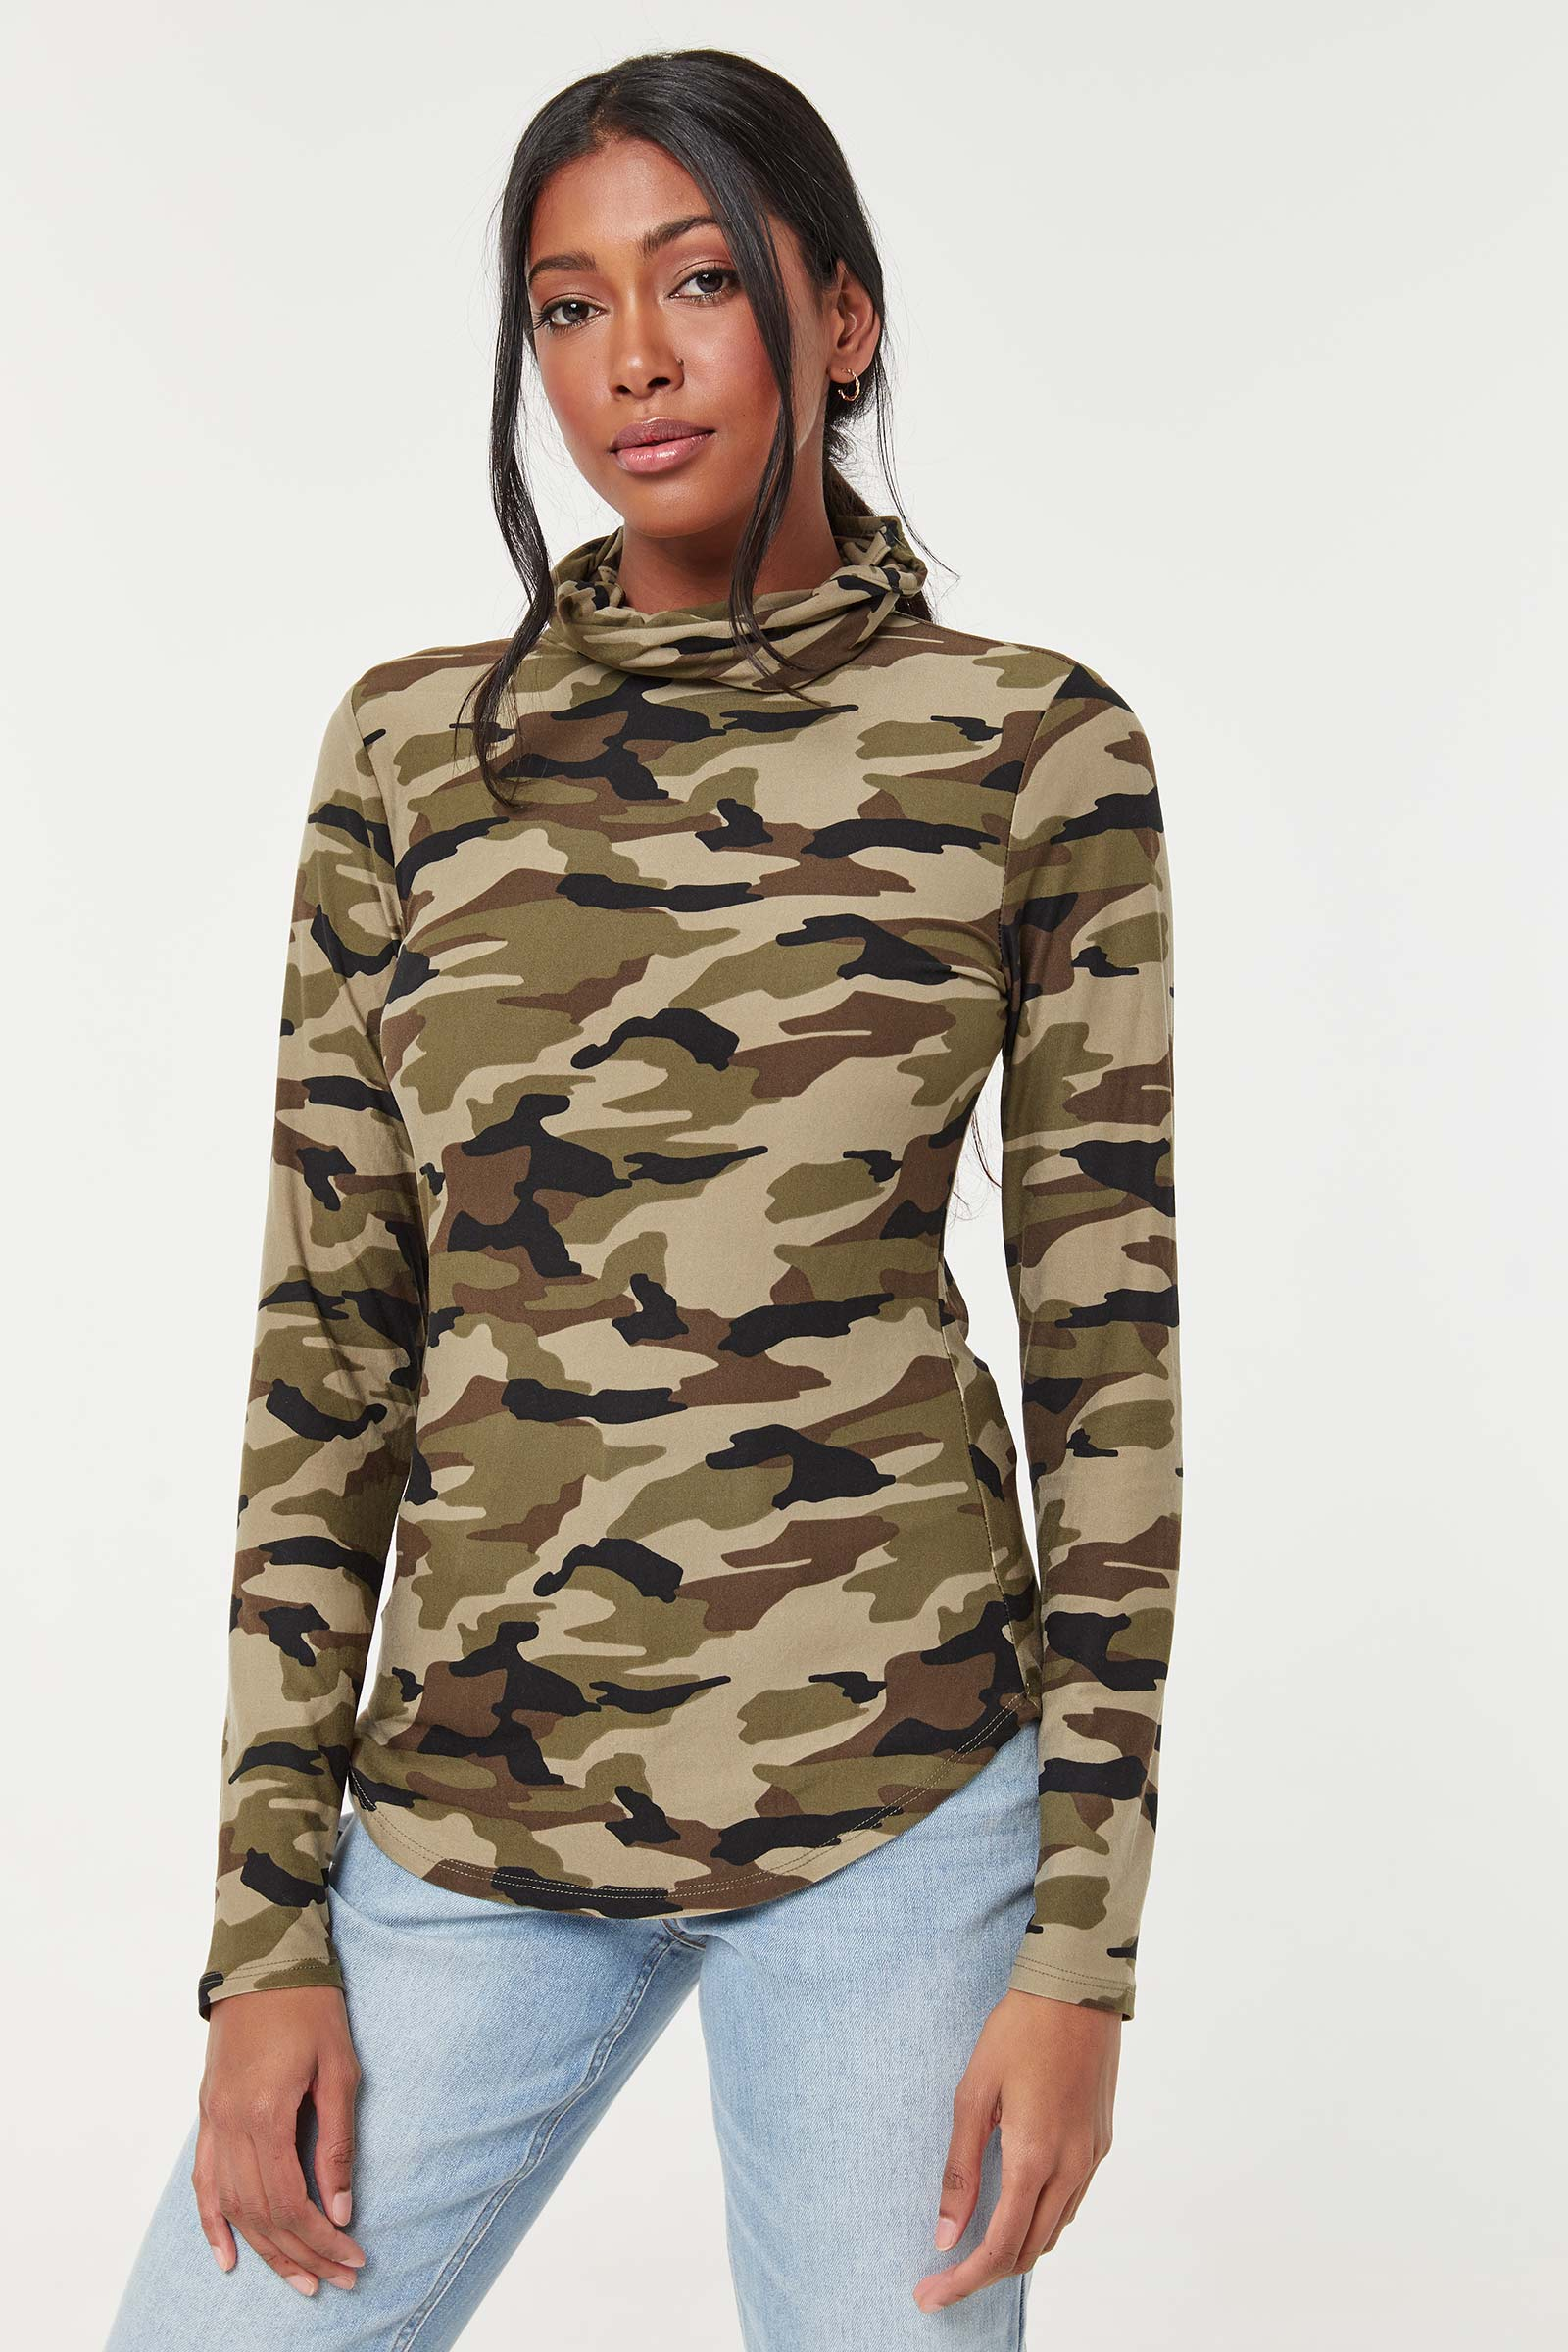 Camo Top with Integrated Mask